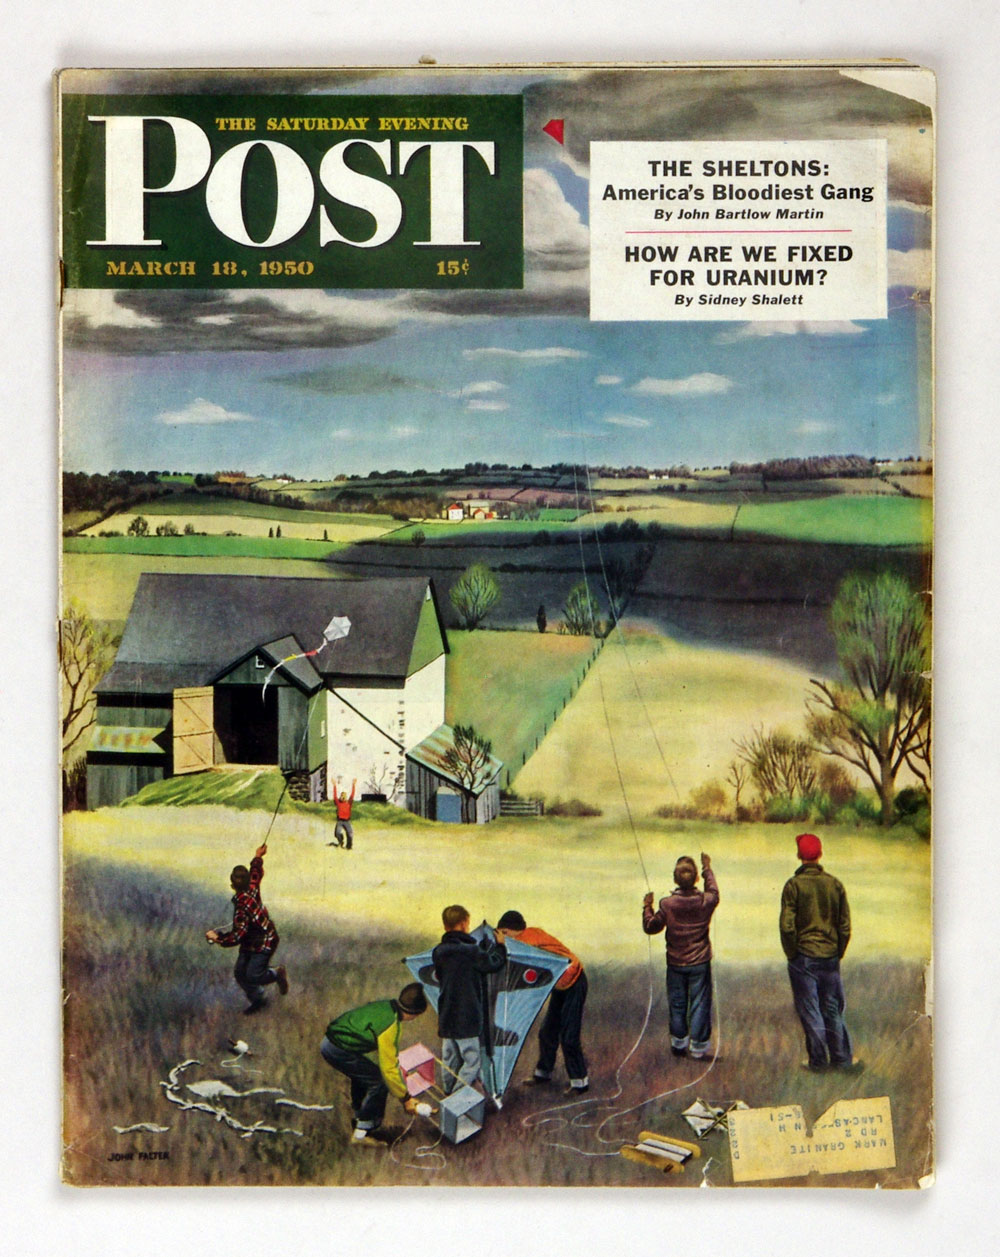 The Saturday Evening Post 1950 Mar 18 Kite Flying